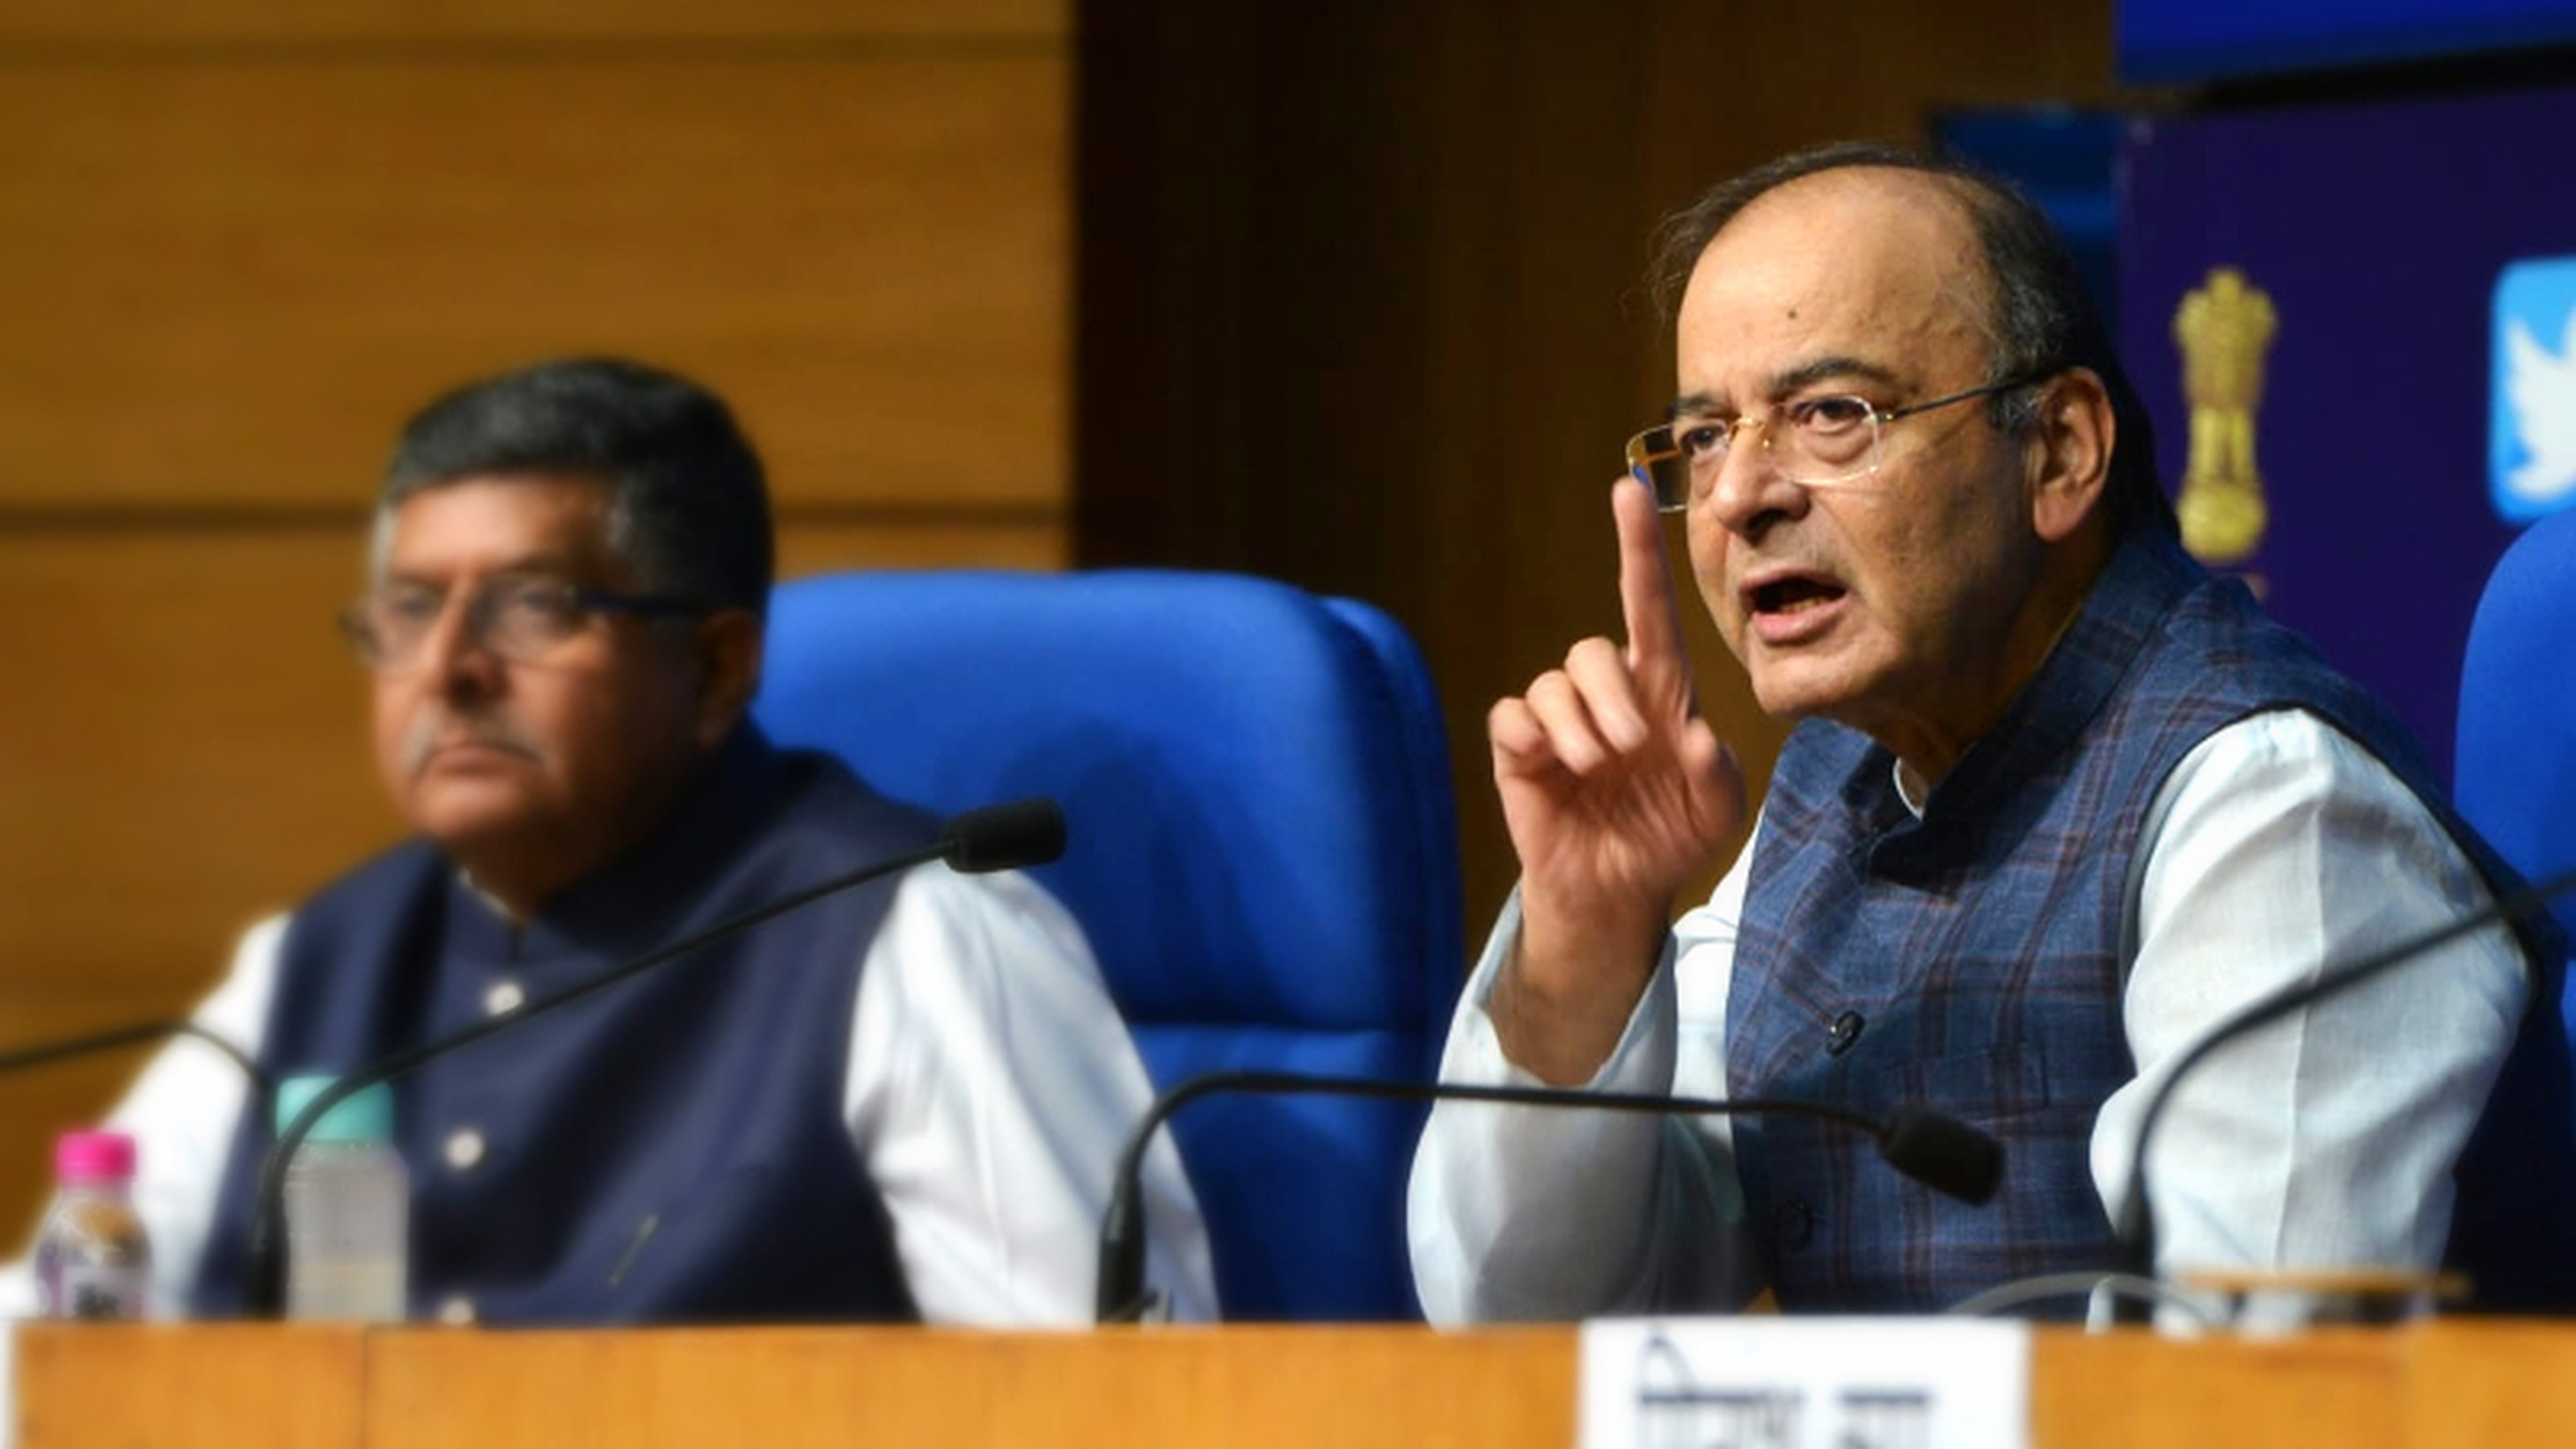 Arun Jaitley and Ravi Shankar Prasad address a media conference in defence of the the government's decision to bench CBI director Alok Verma